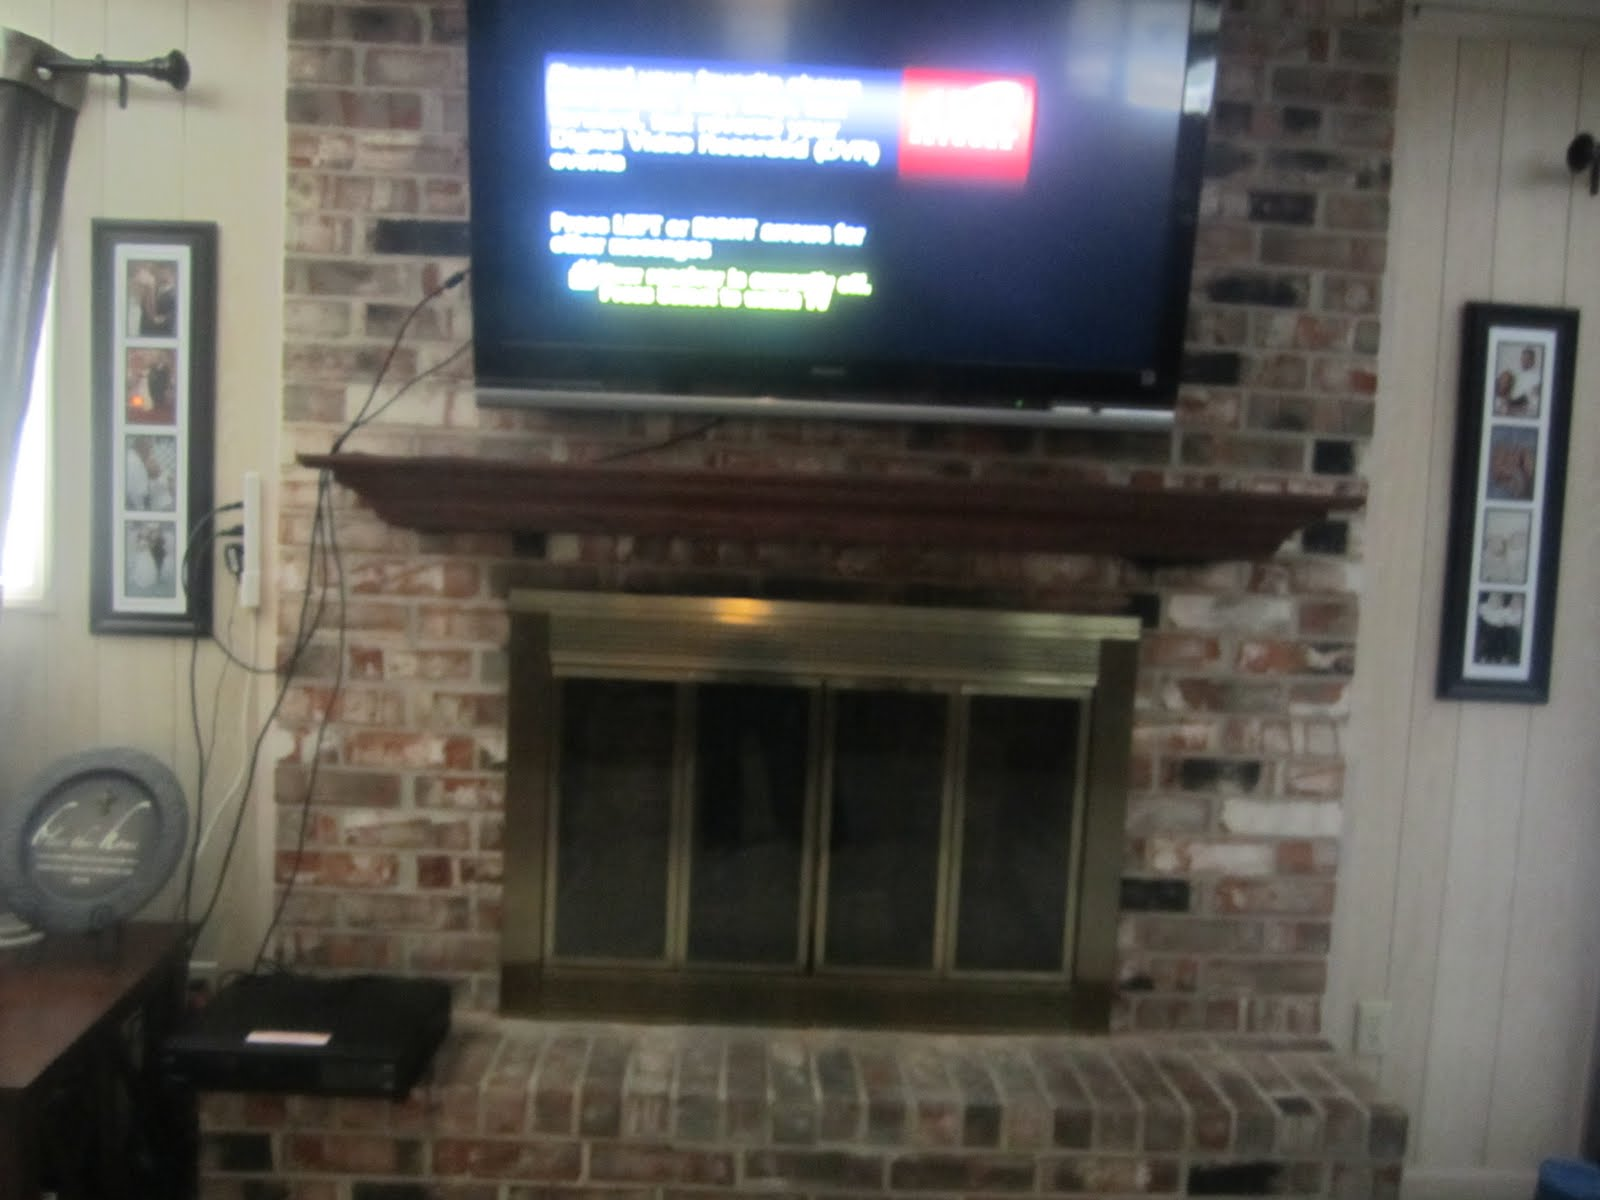 Mount Tv Brick Fireplace Hide Wires